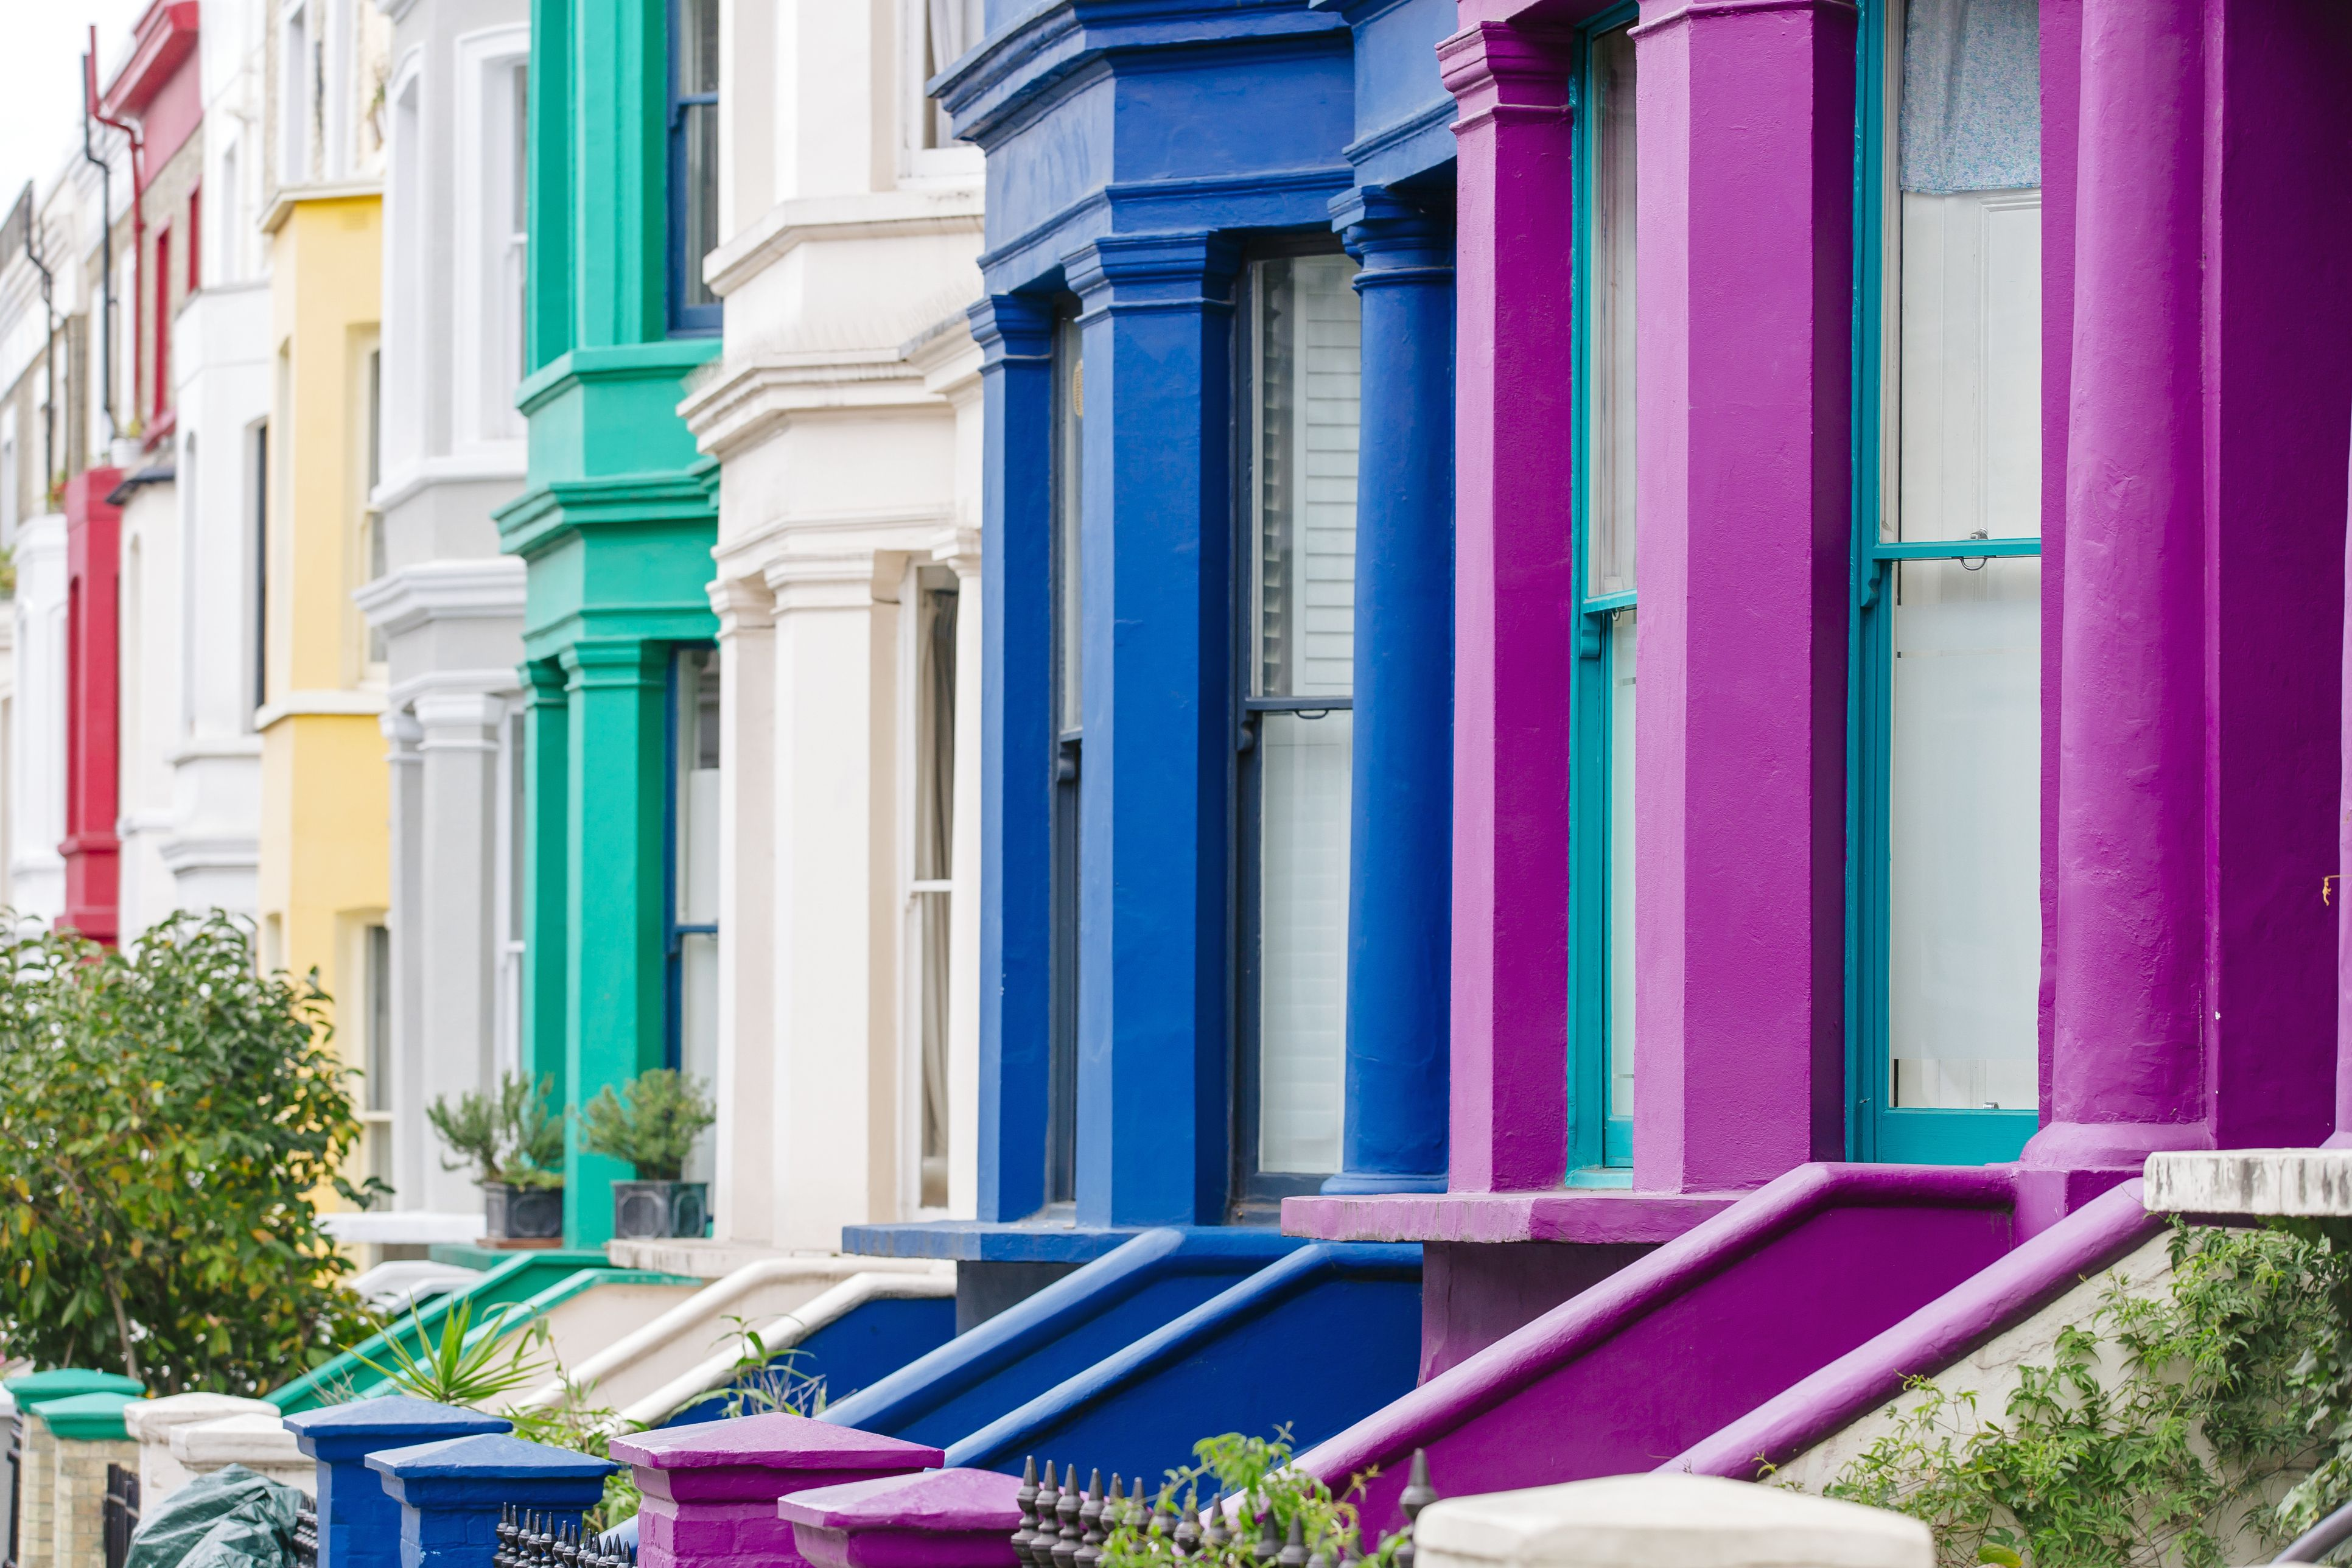 London S Airbnb Hosts Made 23 Million In December Airbnb Uk